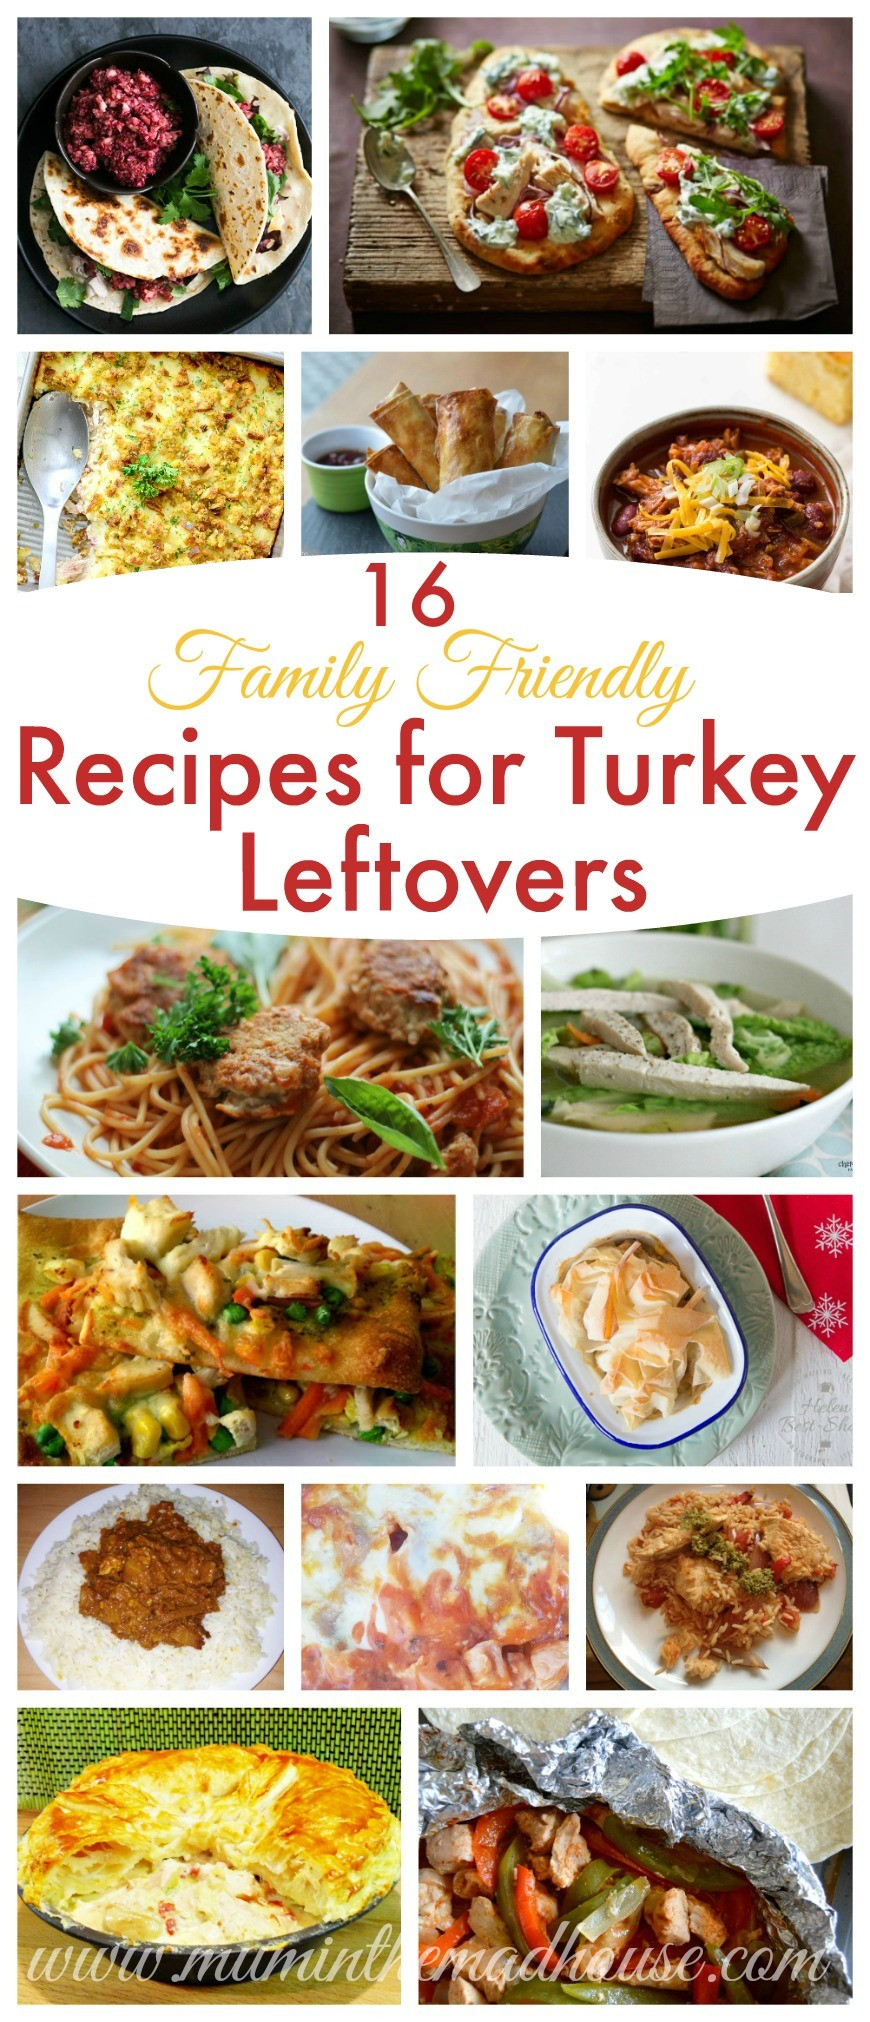 16 Leftover turkey recipes that the whole family will love. 16 Family friendly leftover turkey recipes. Make sure you make the most of your turkey leftovers with these recipes the whole family will adore